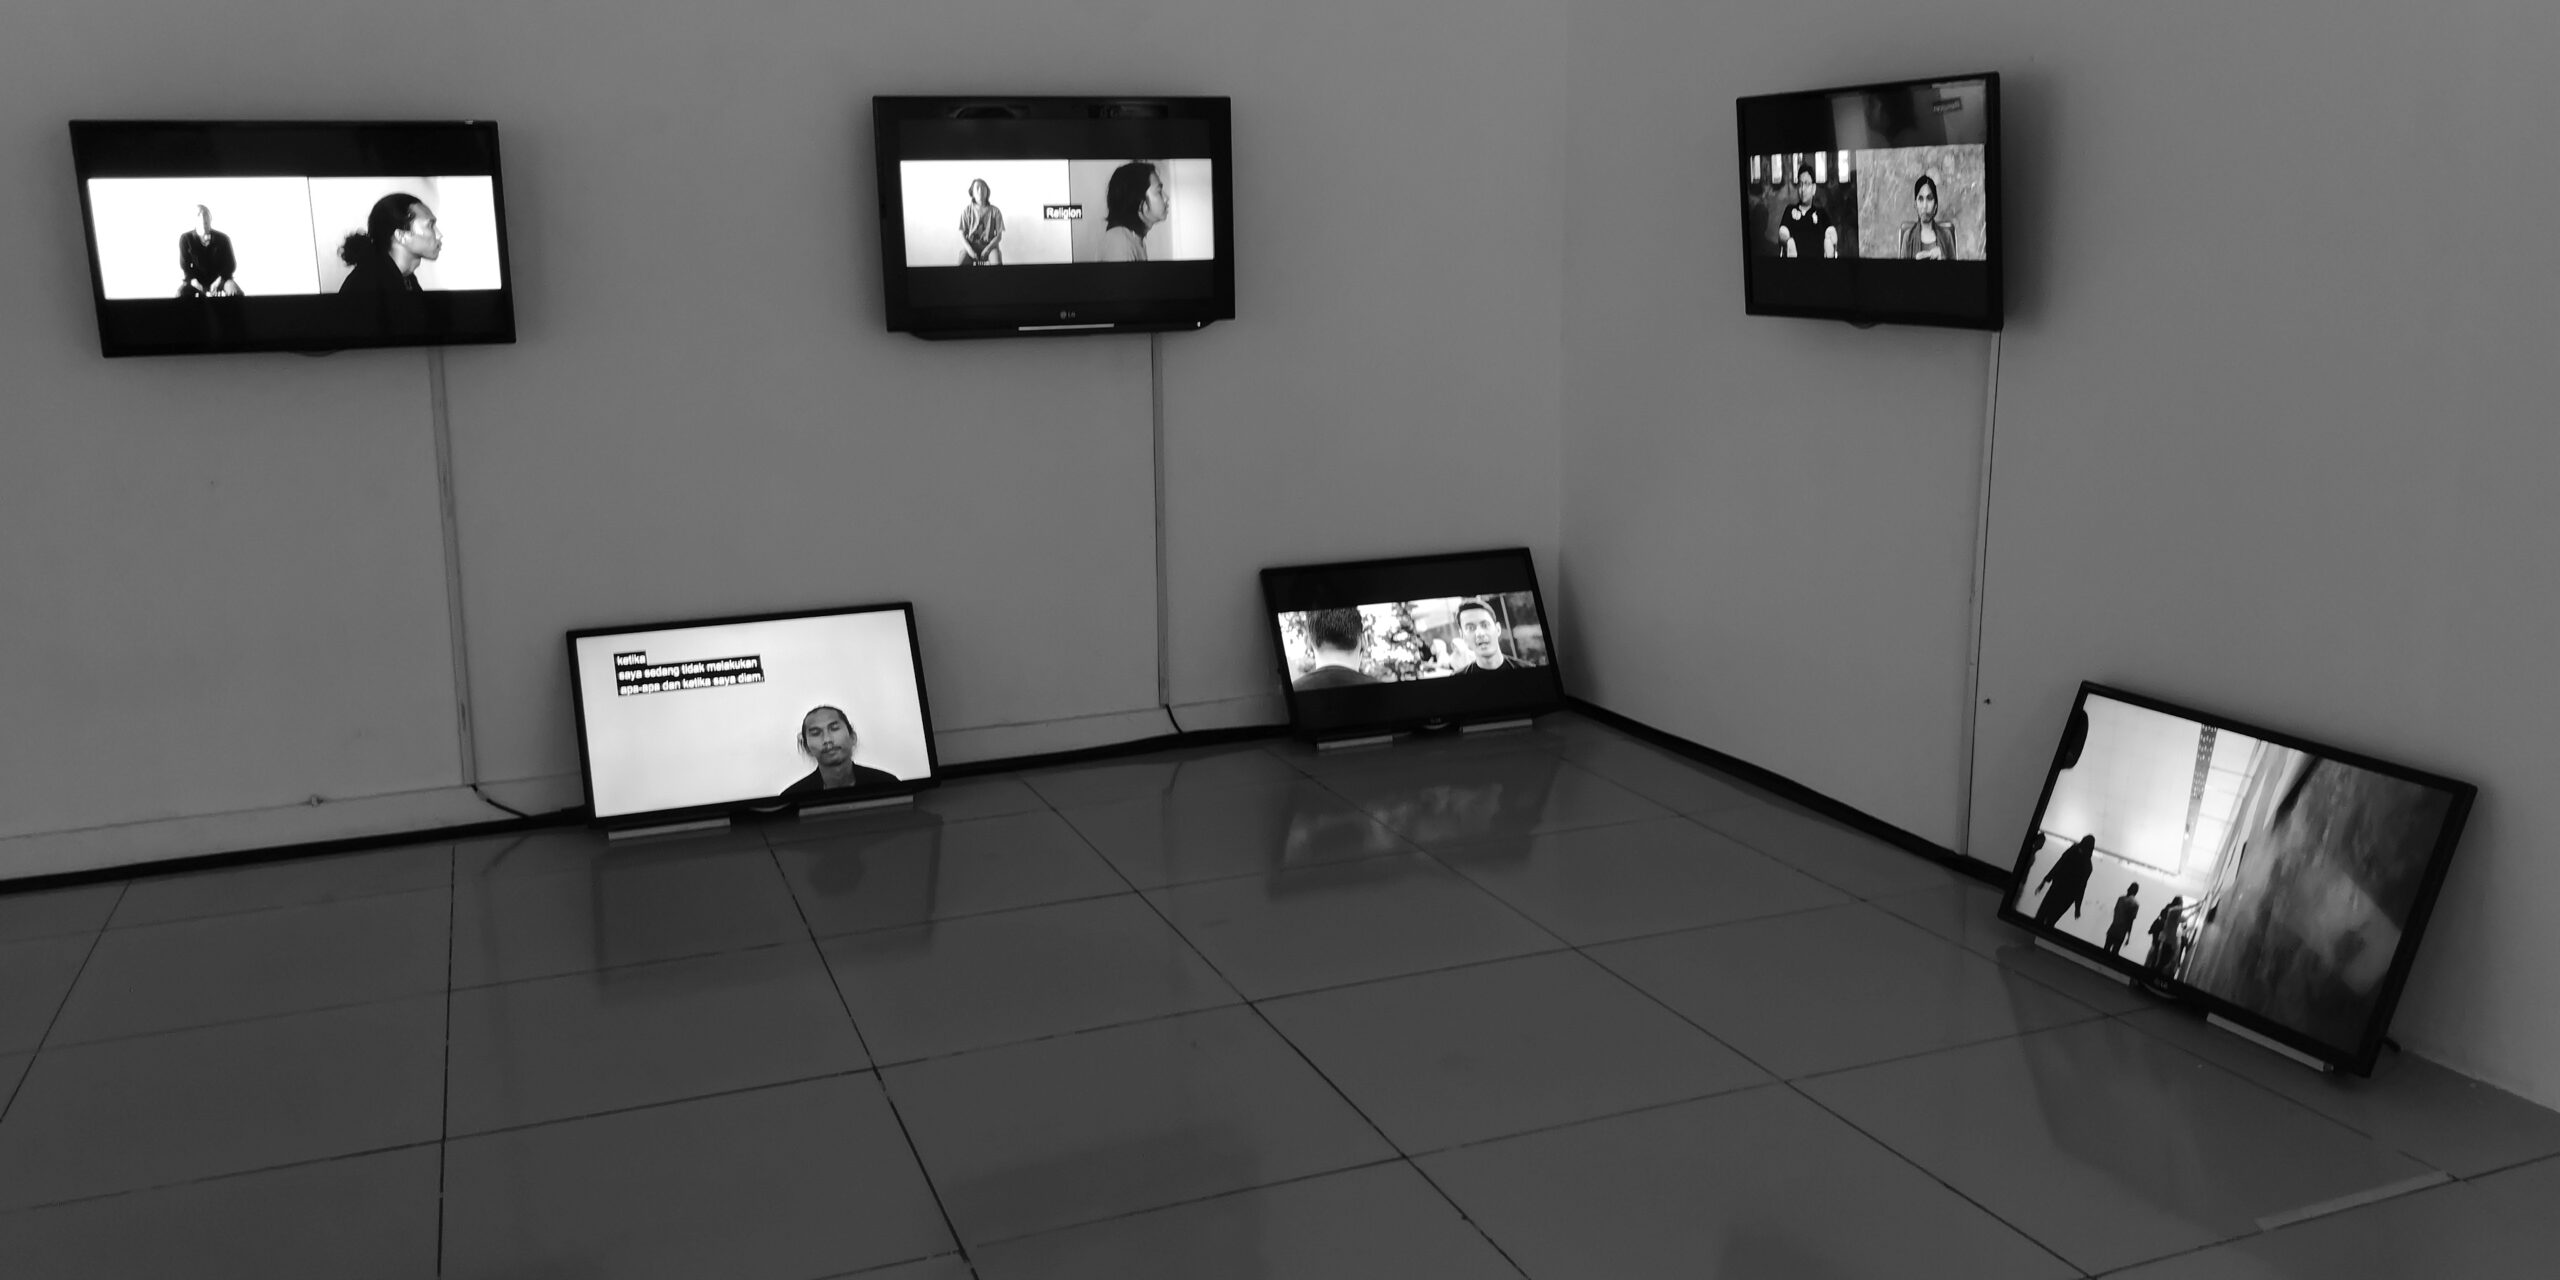 Exhibition view of video installation with six monitors hung on the wall and resting on the floor.